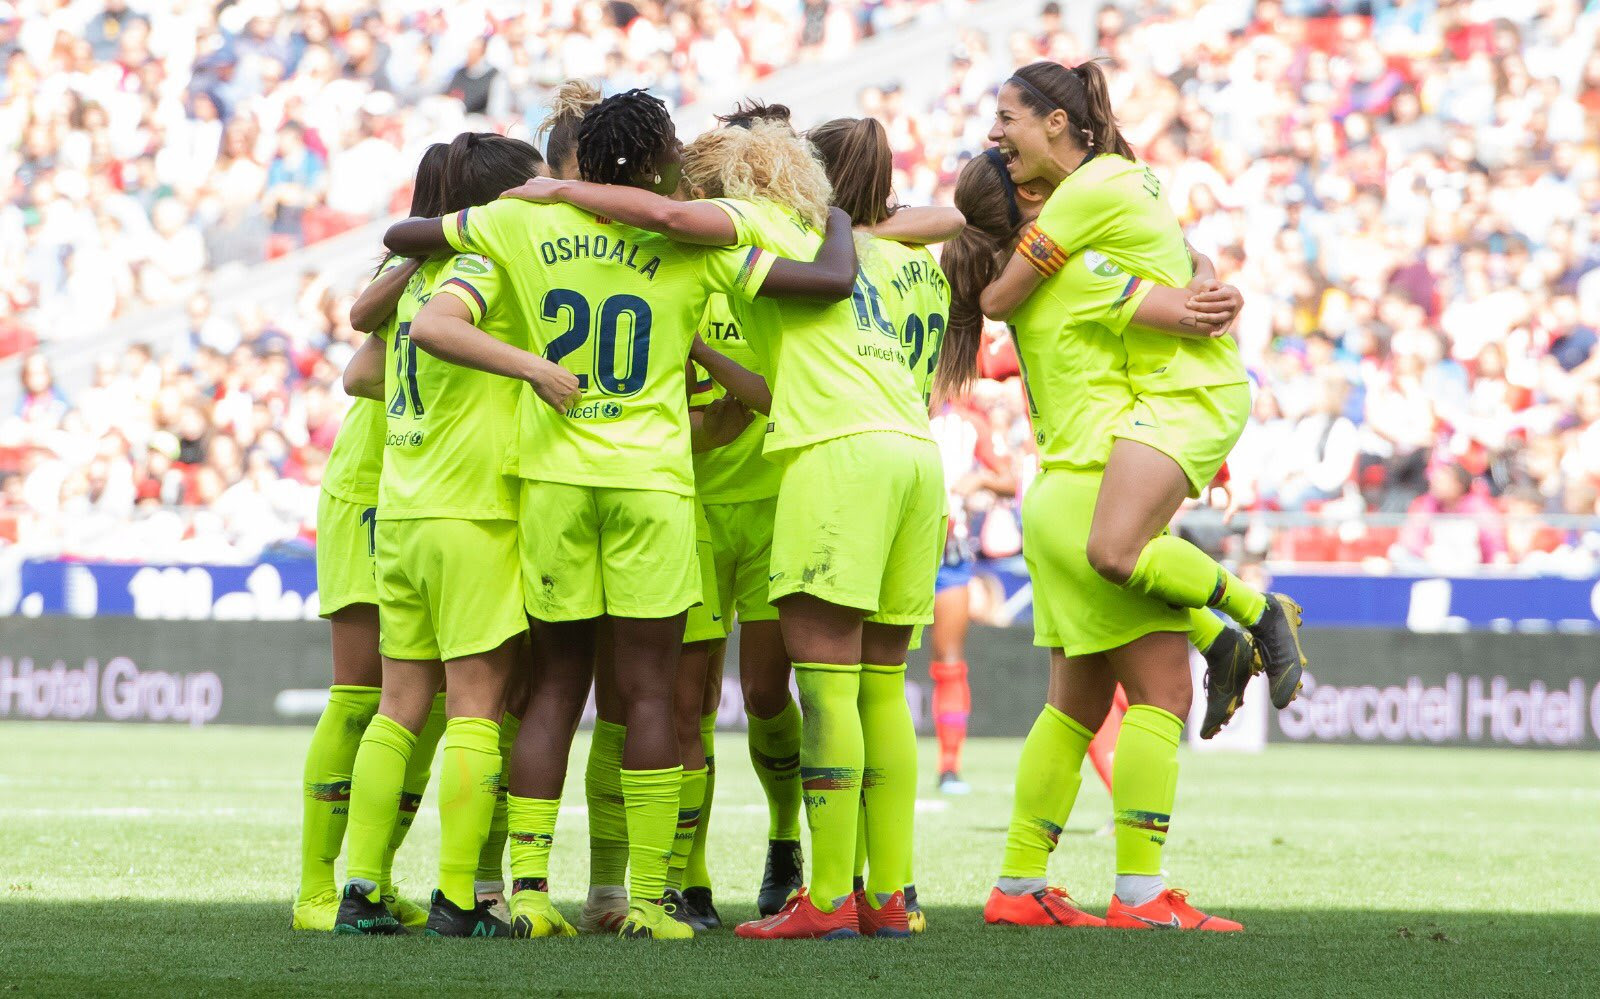 Barcelona Femeni were victorious at the Wanda Metroplitano Stadium  (Twitter / Barcelona Femeni)